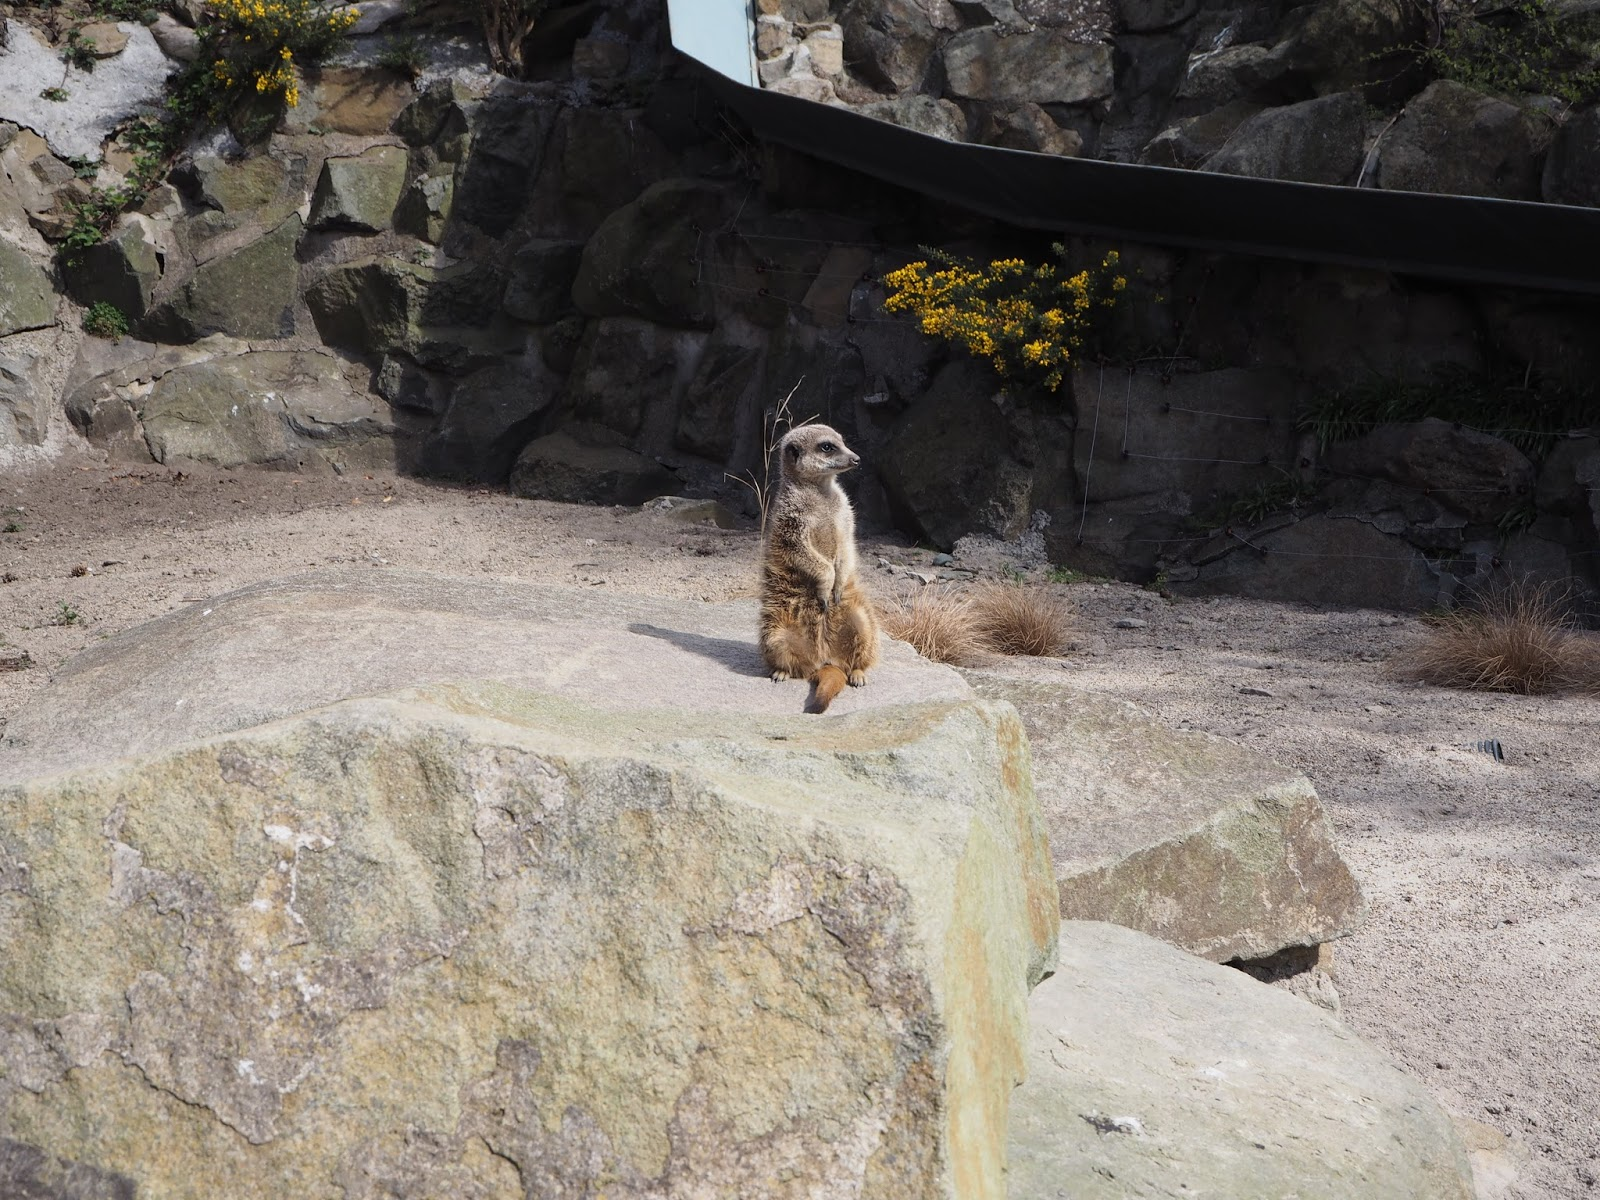 edinburgh zoo meerkat